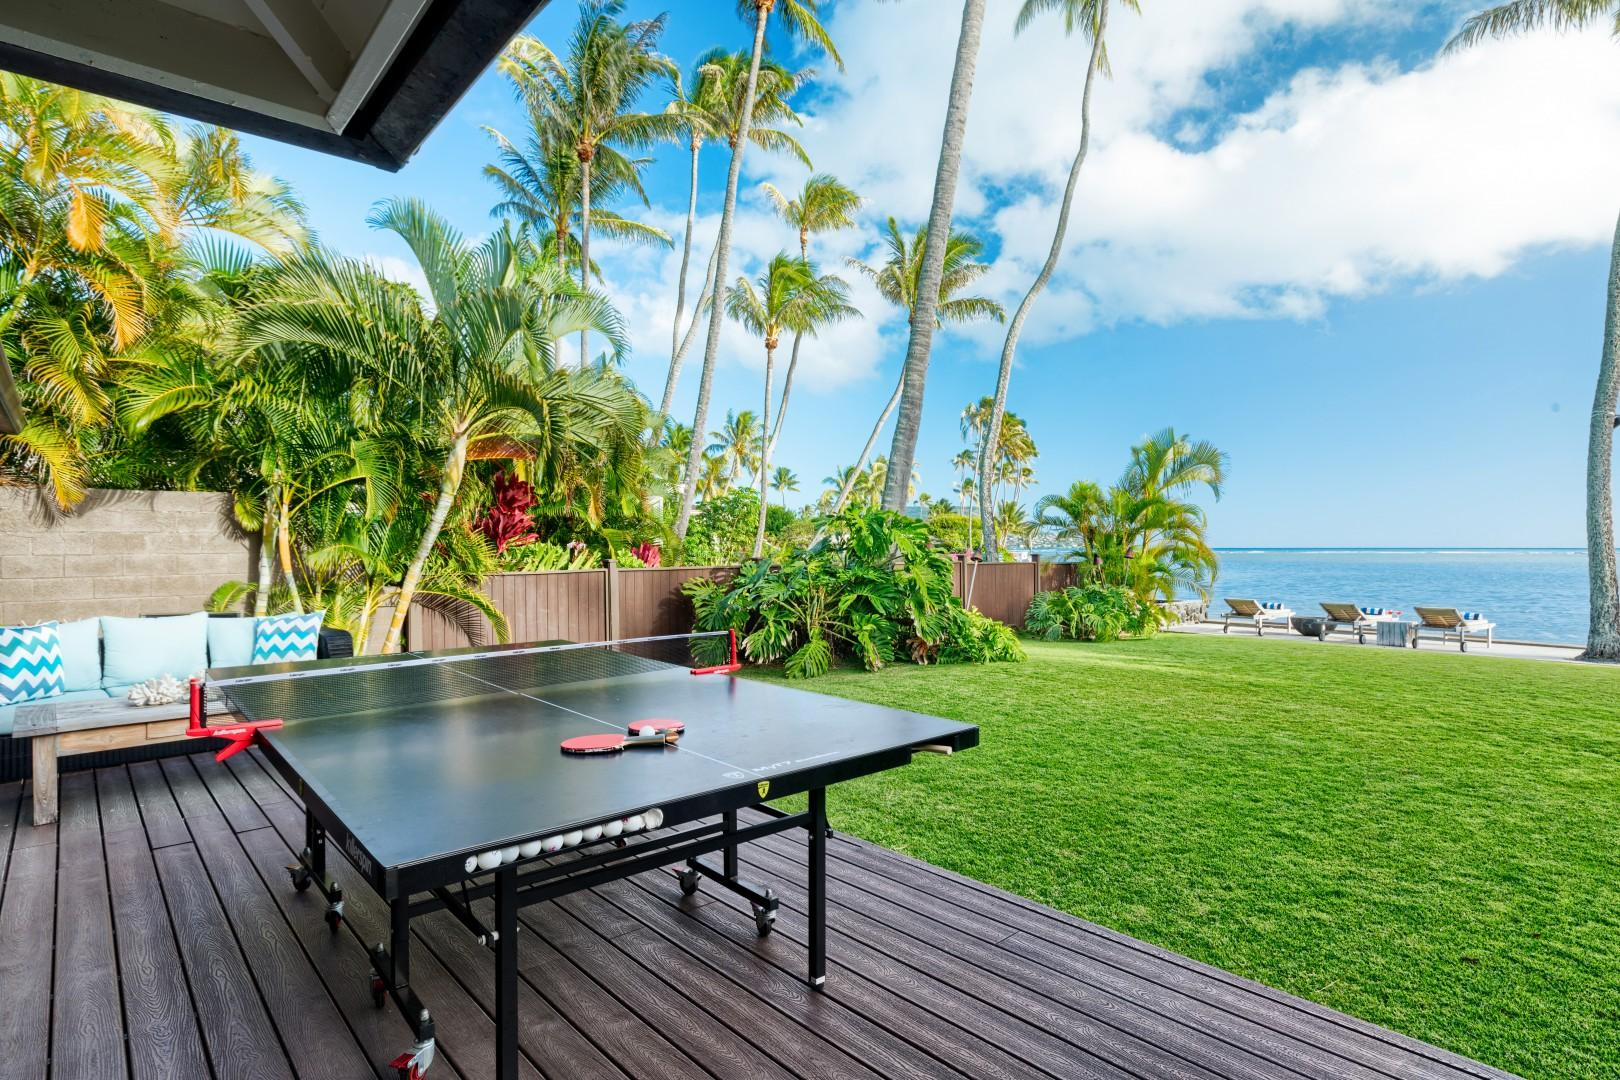 Your very own ping-pong table, available to be set up before your arrival! Just let your reservation manager know you would like it.